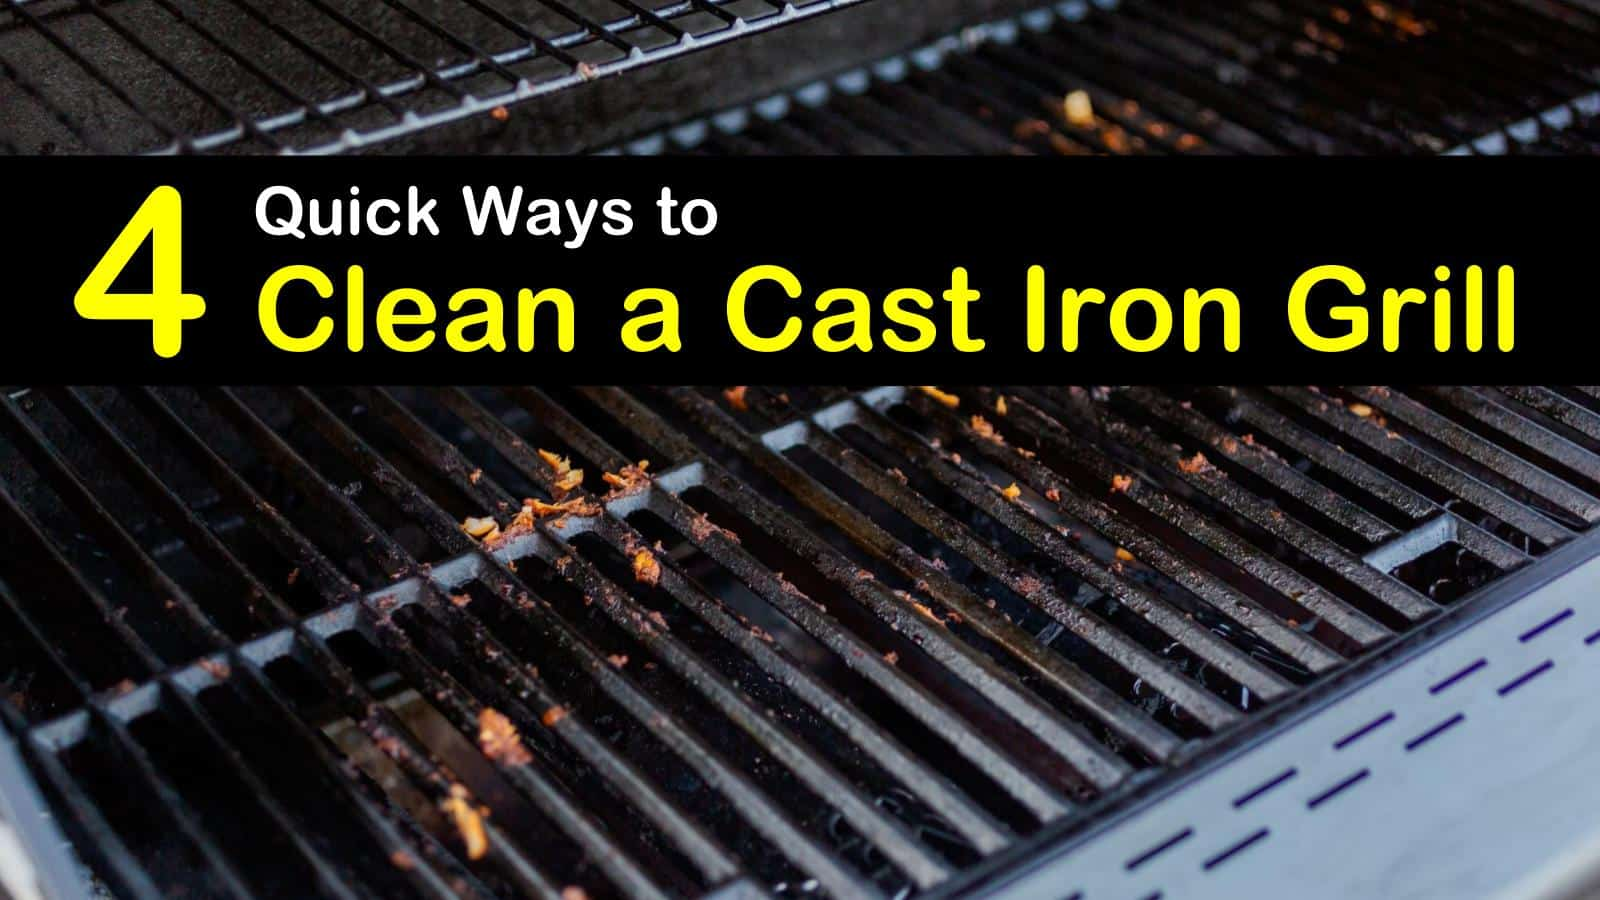 8 Quick Ways to Clean a Cast Iron Grill